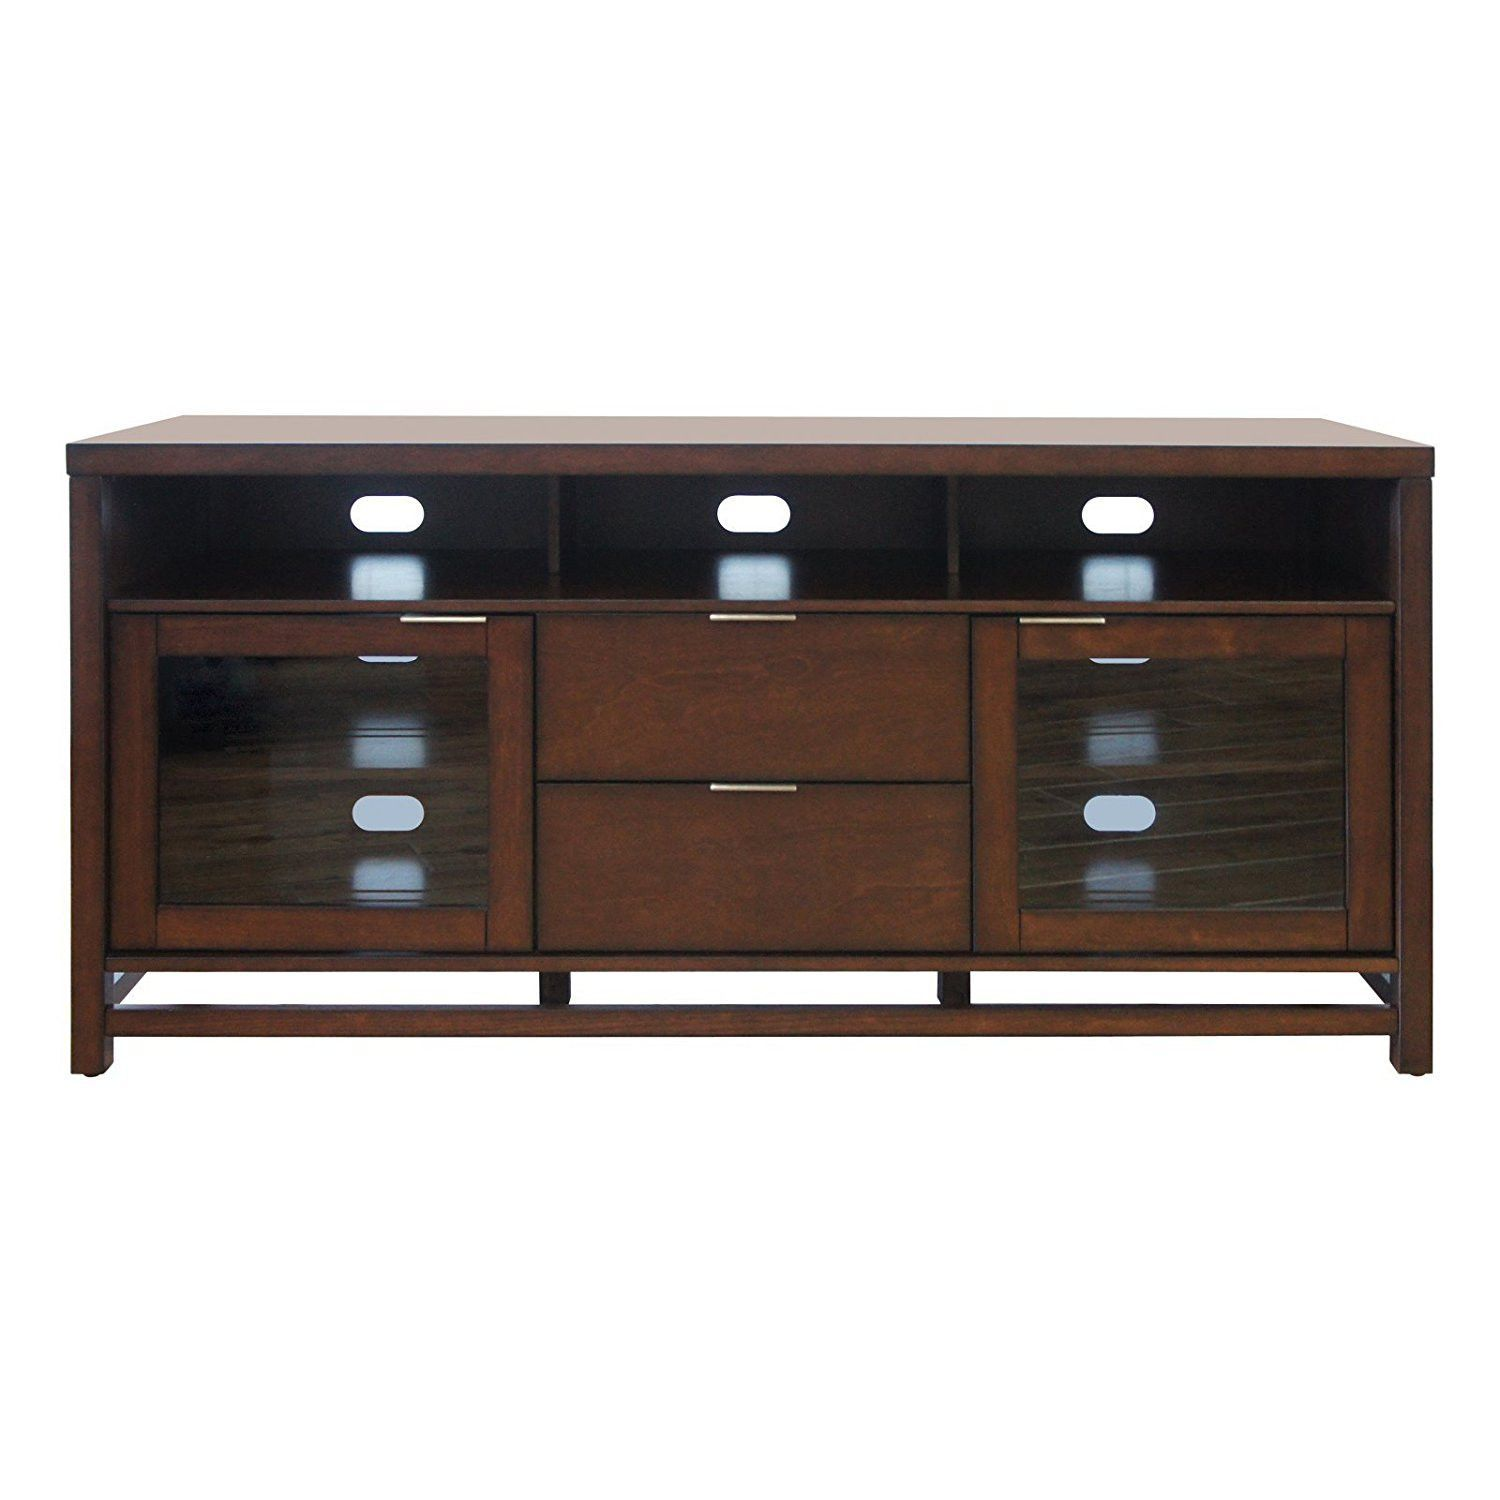 Bello Scarborough No Tools Embly Chocolate Finish Wood Audio Video Cabinet